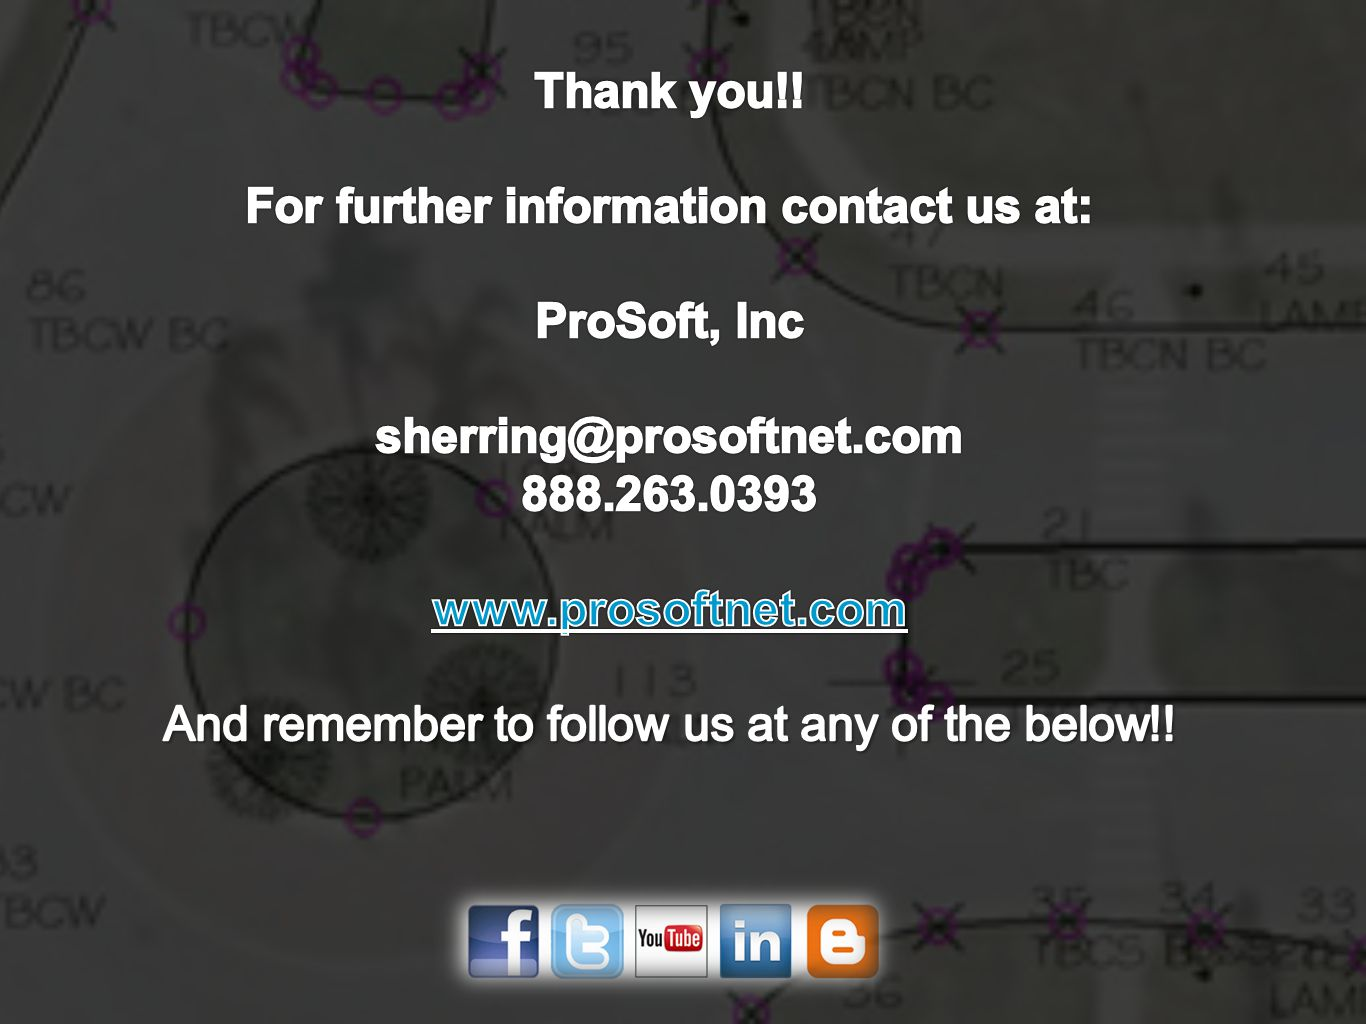 For further information contact us at: ProSoft, Inc